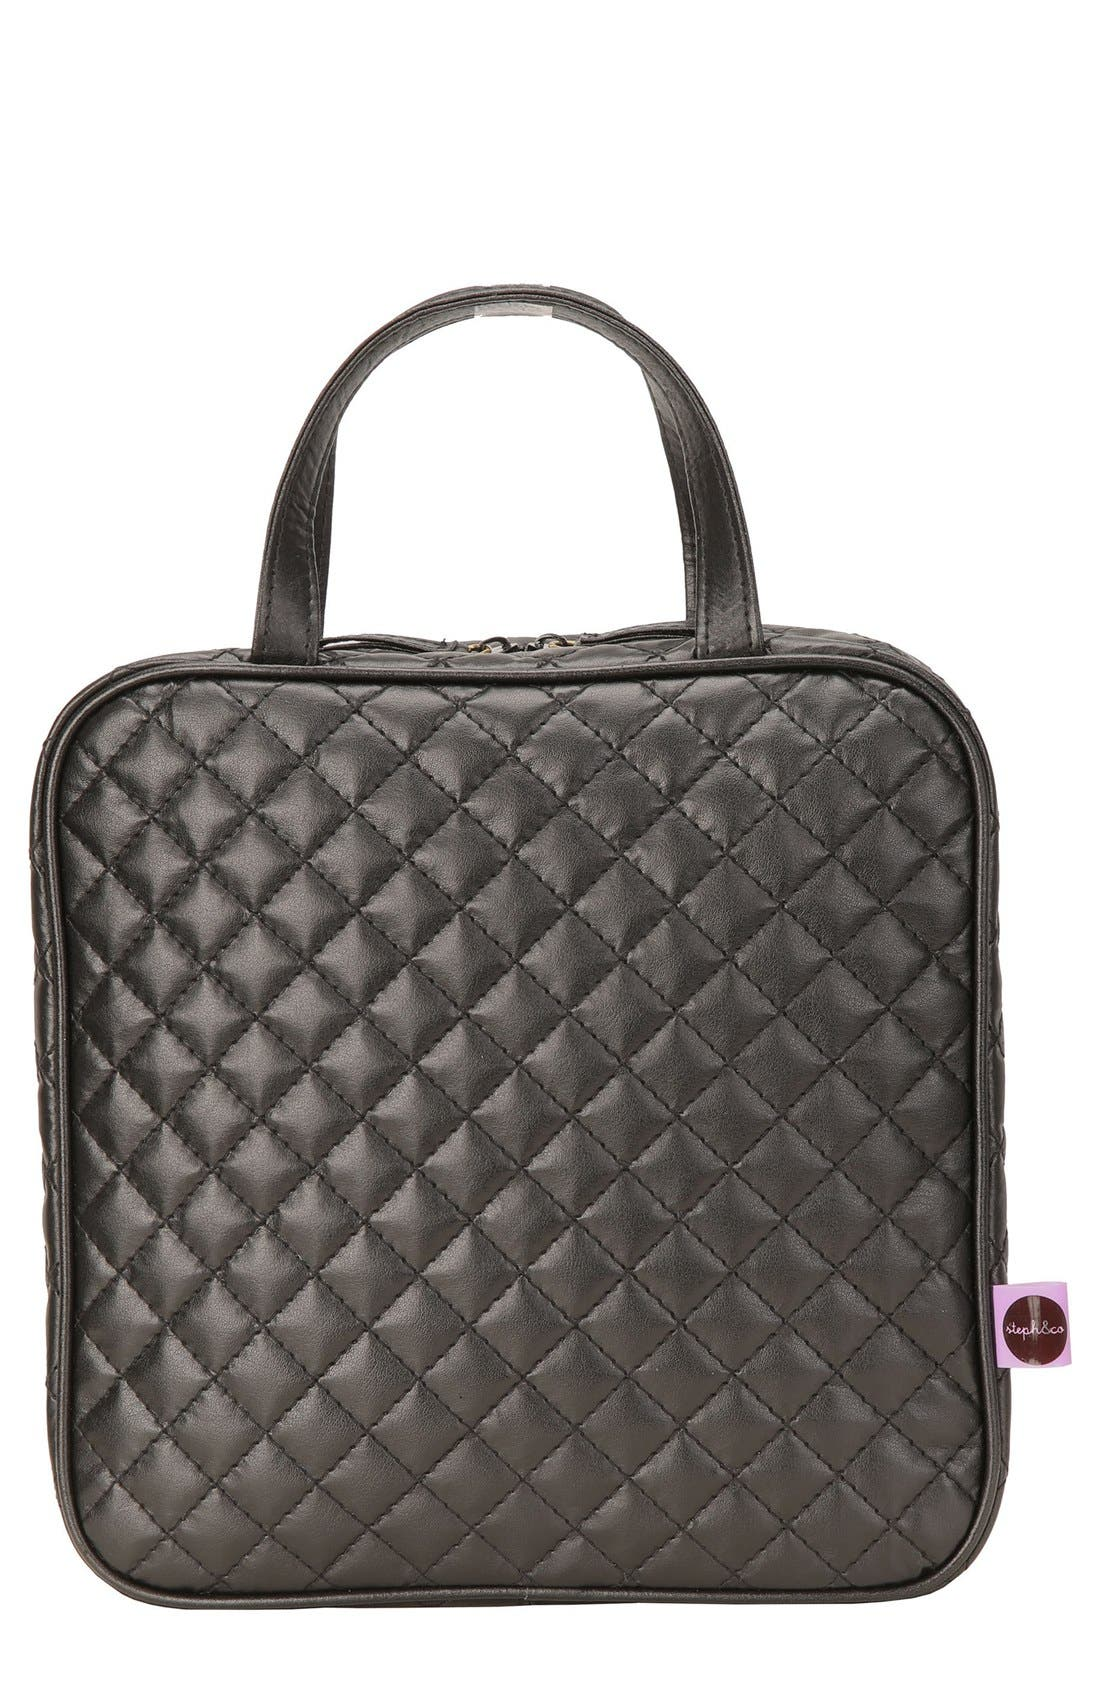 'Marissa' Black Quilted Cosmetics Case,                             Main thumbnail 1, color,                             000